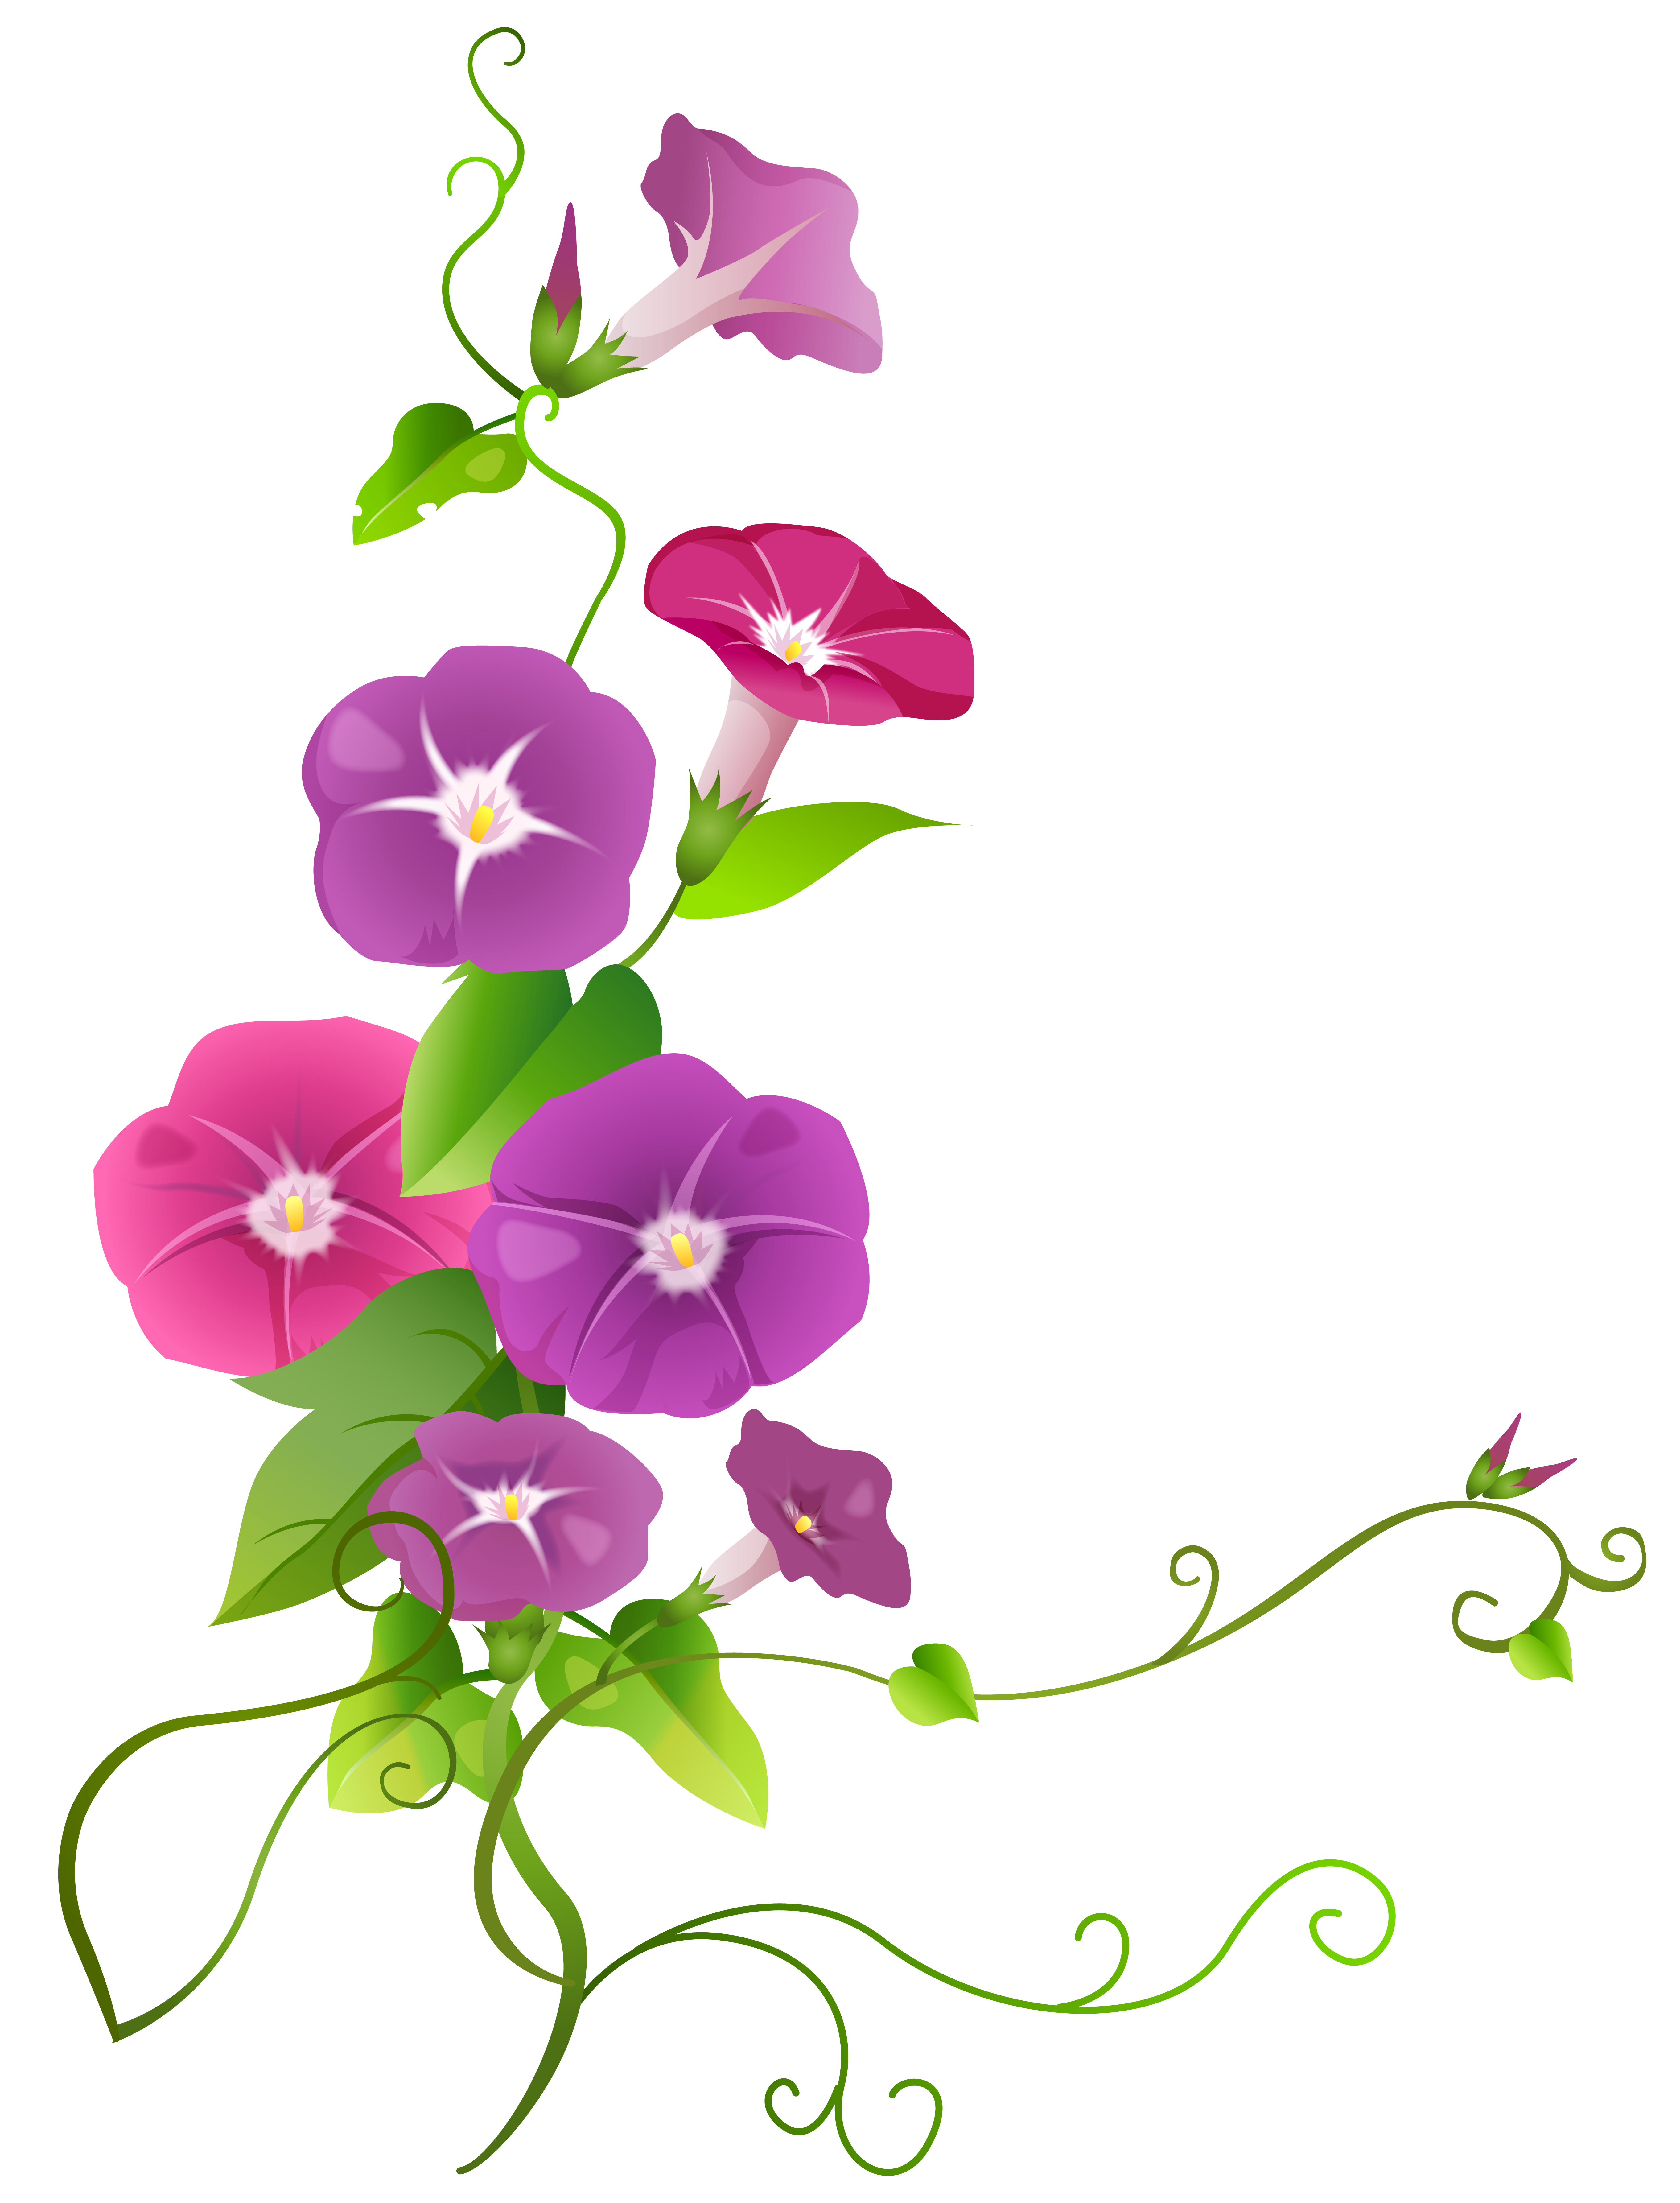 Gate clipart easter. Ipomoea flower transparent png